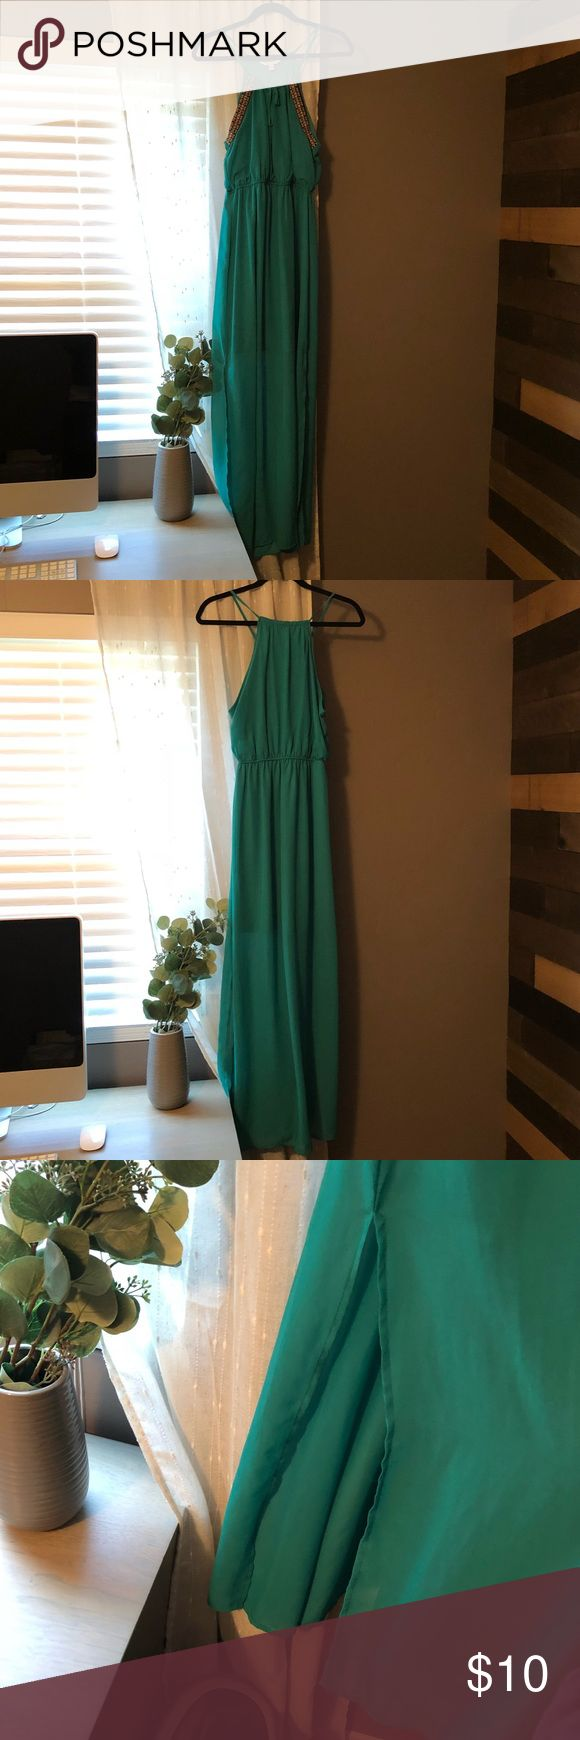 Turquoise maxi dress from Charming Charlie's Turquoise maxi dress from Charming Charlie's... worn once, in good condition... shows tribal accents on front of dress... size medium Charming Charlie Dresses Maxi